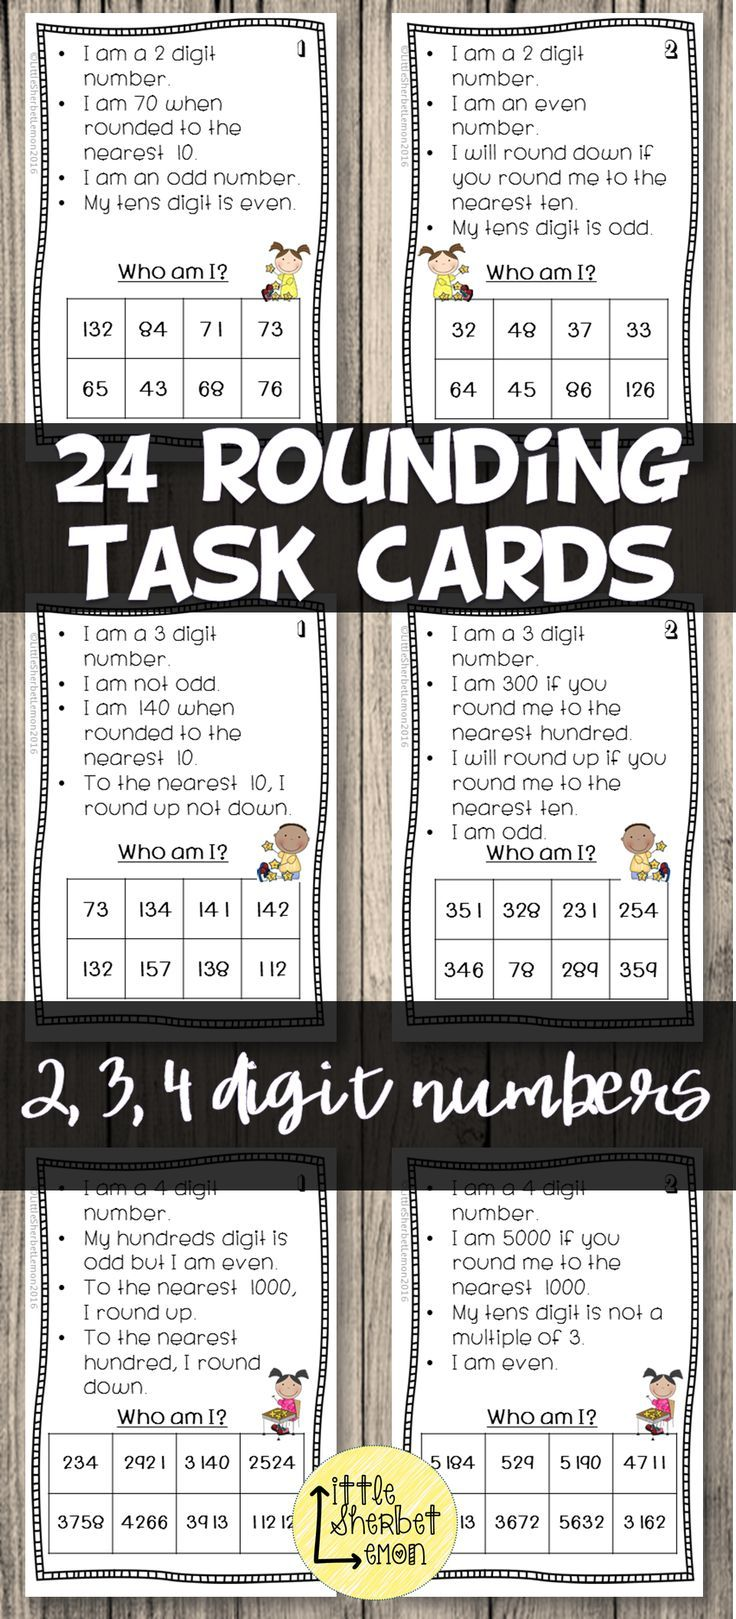 For a fun, differentiated and engaging way of practising rounding whole numbers, look no further! Included in this package are 24 Who am I? task cards. 8 using 2-digit numbers, 8 using 3-digit numbers and 8 using 4-digit numbers.